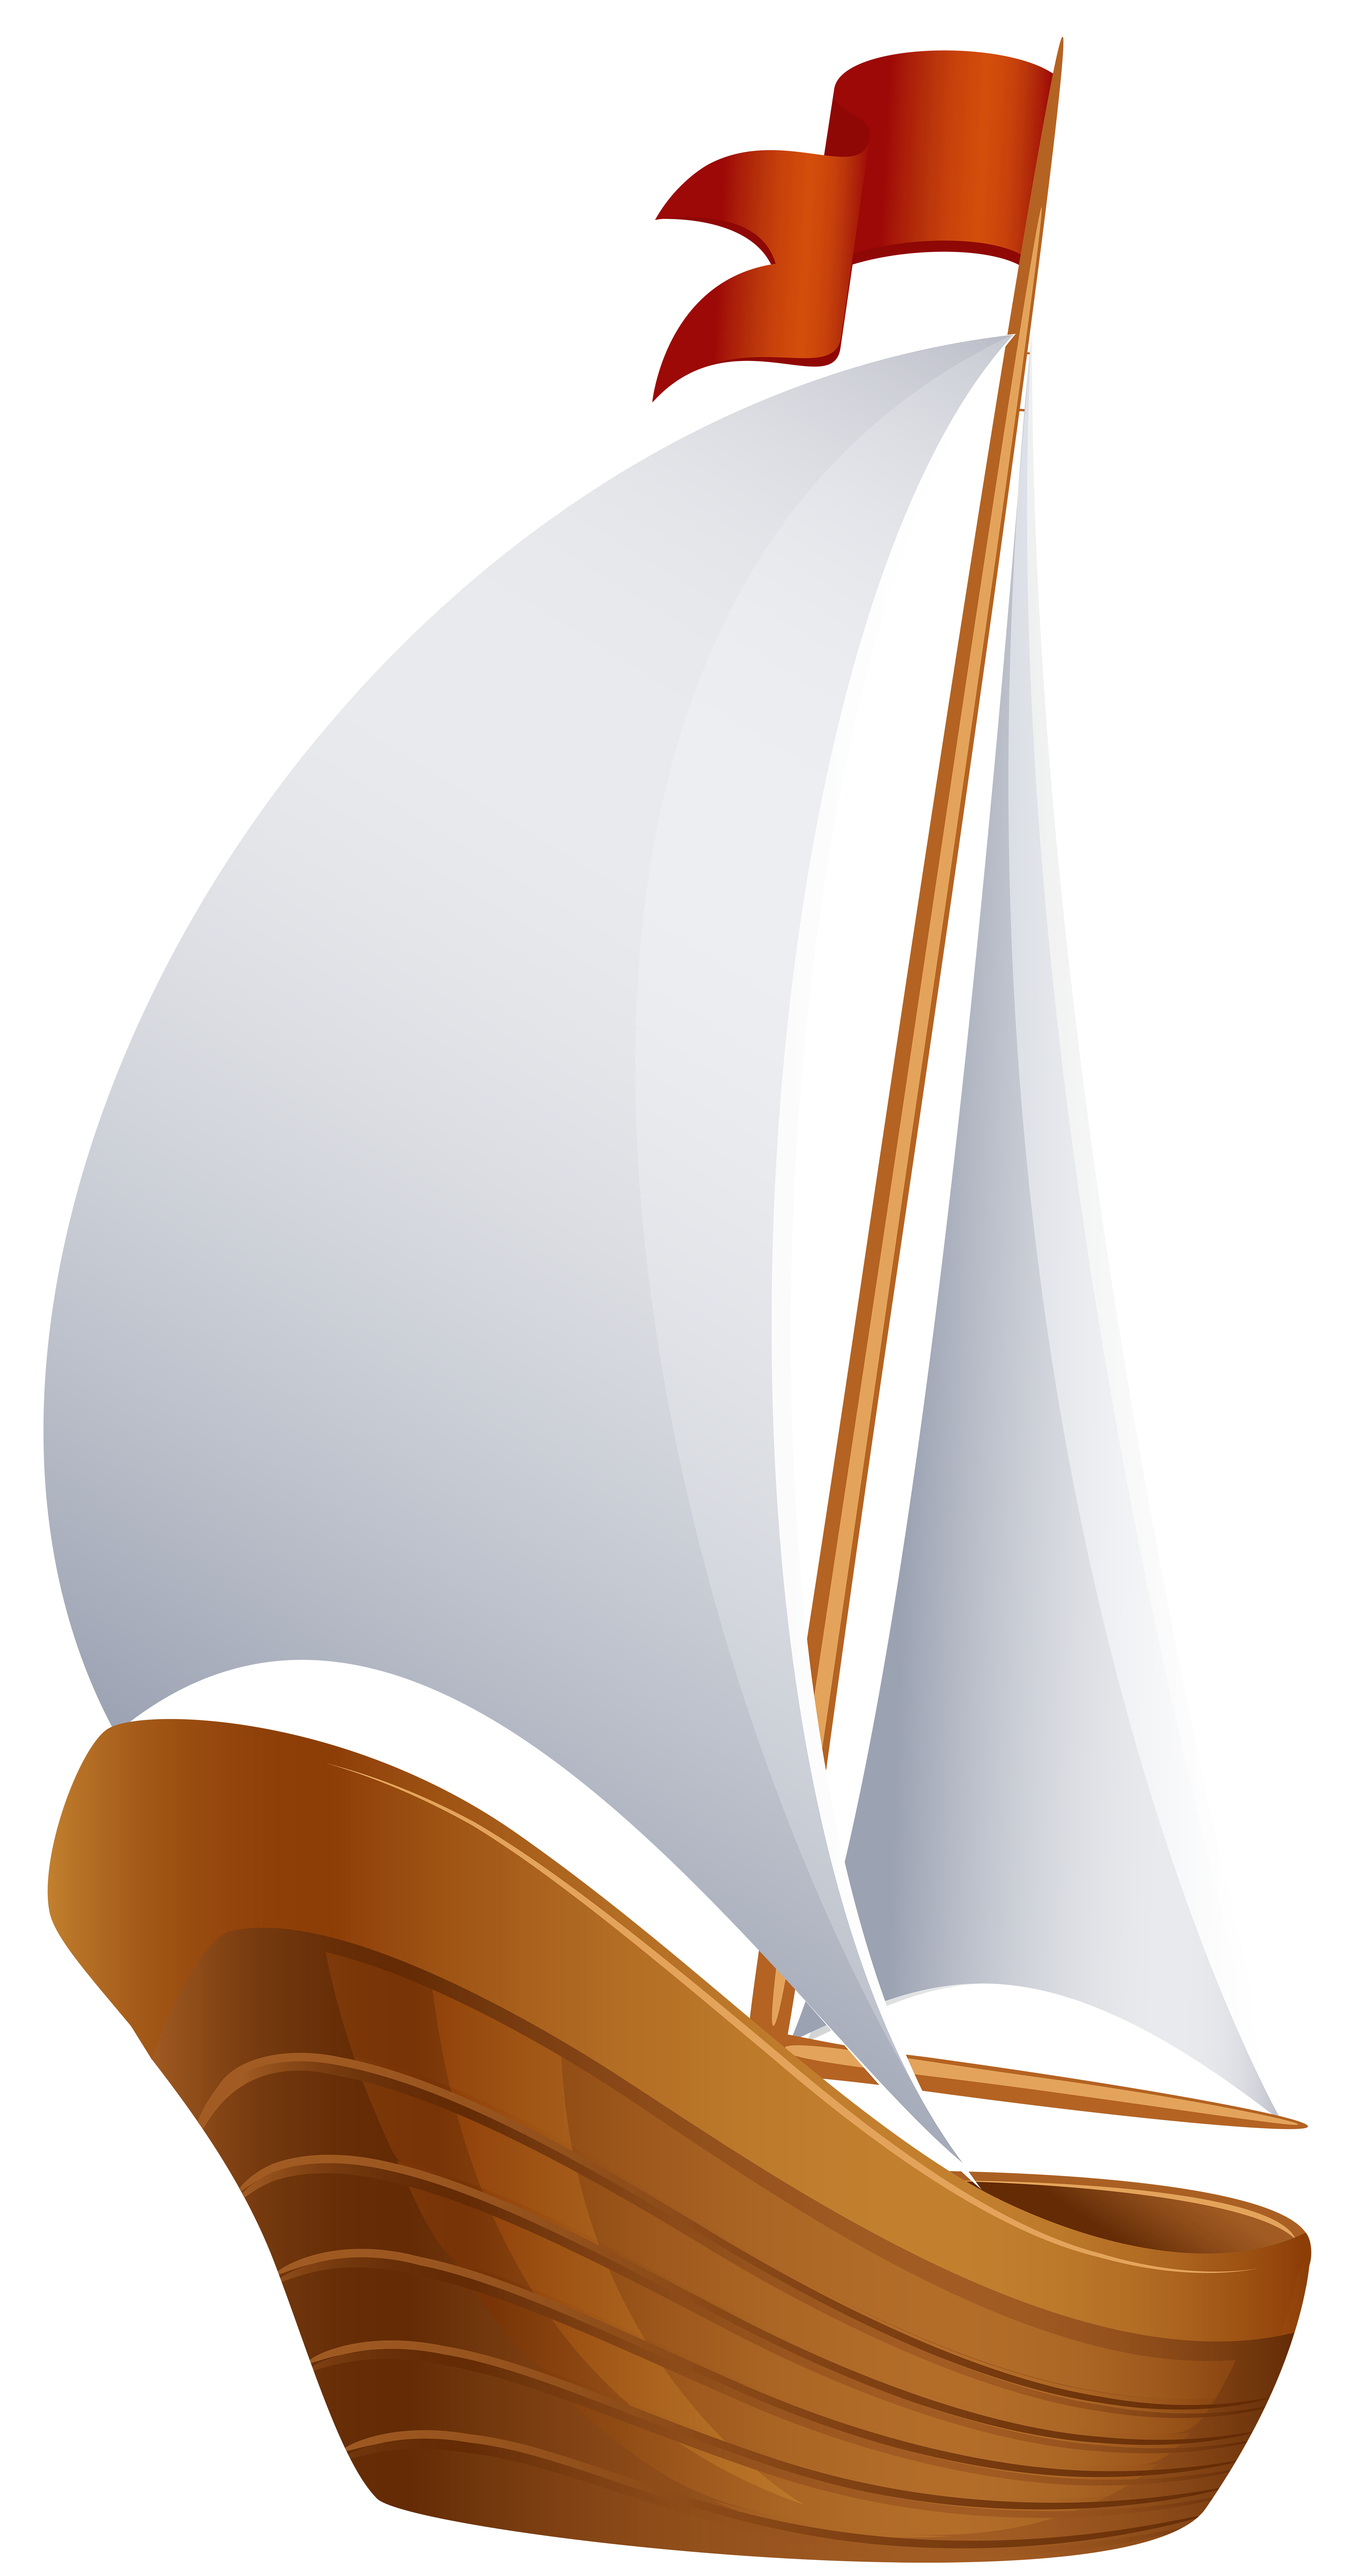 Clipart boat wind. Sailboat portable network graphics